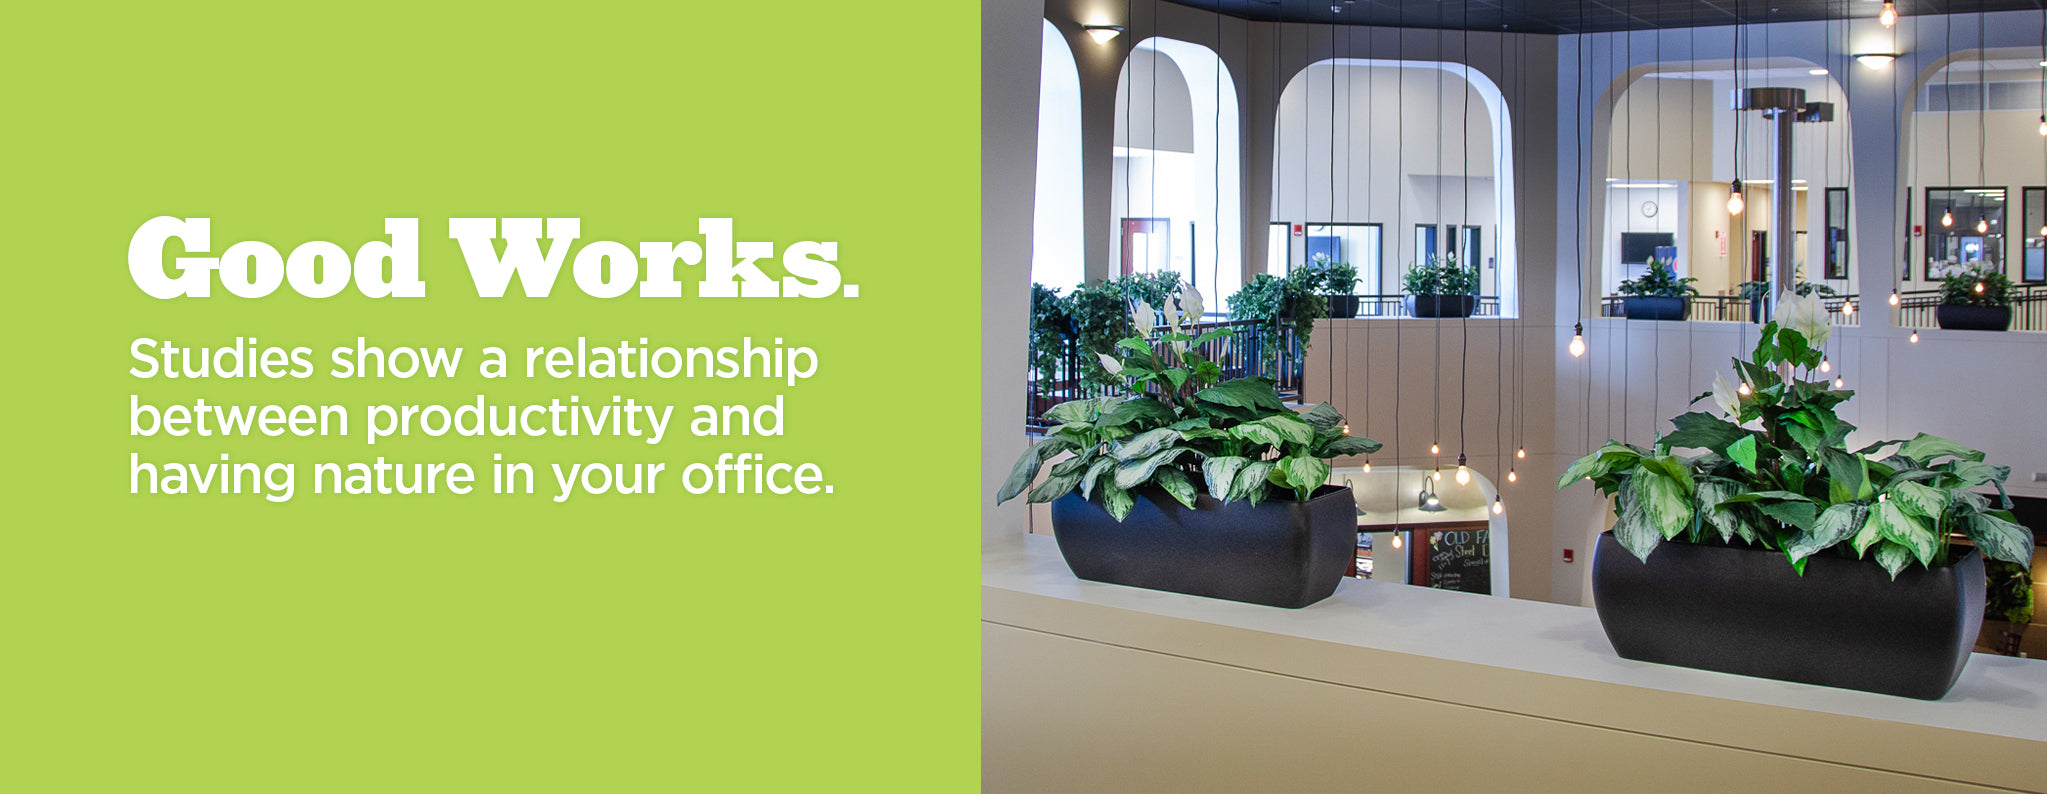 Athena Planters: Good Works. Studies show a relationship between productivity and having nature in your office.